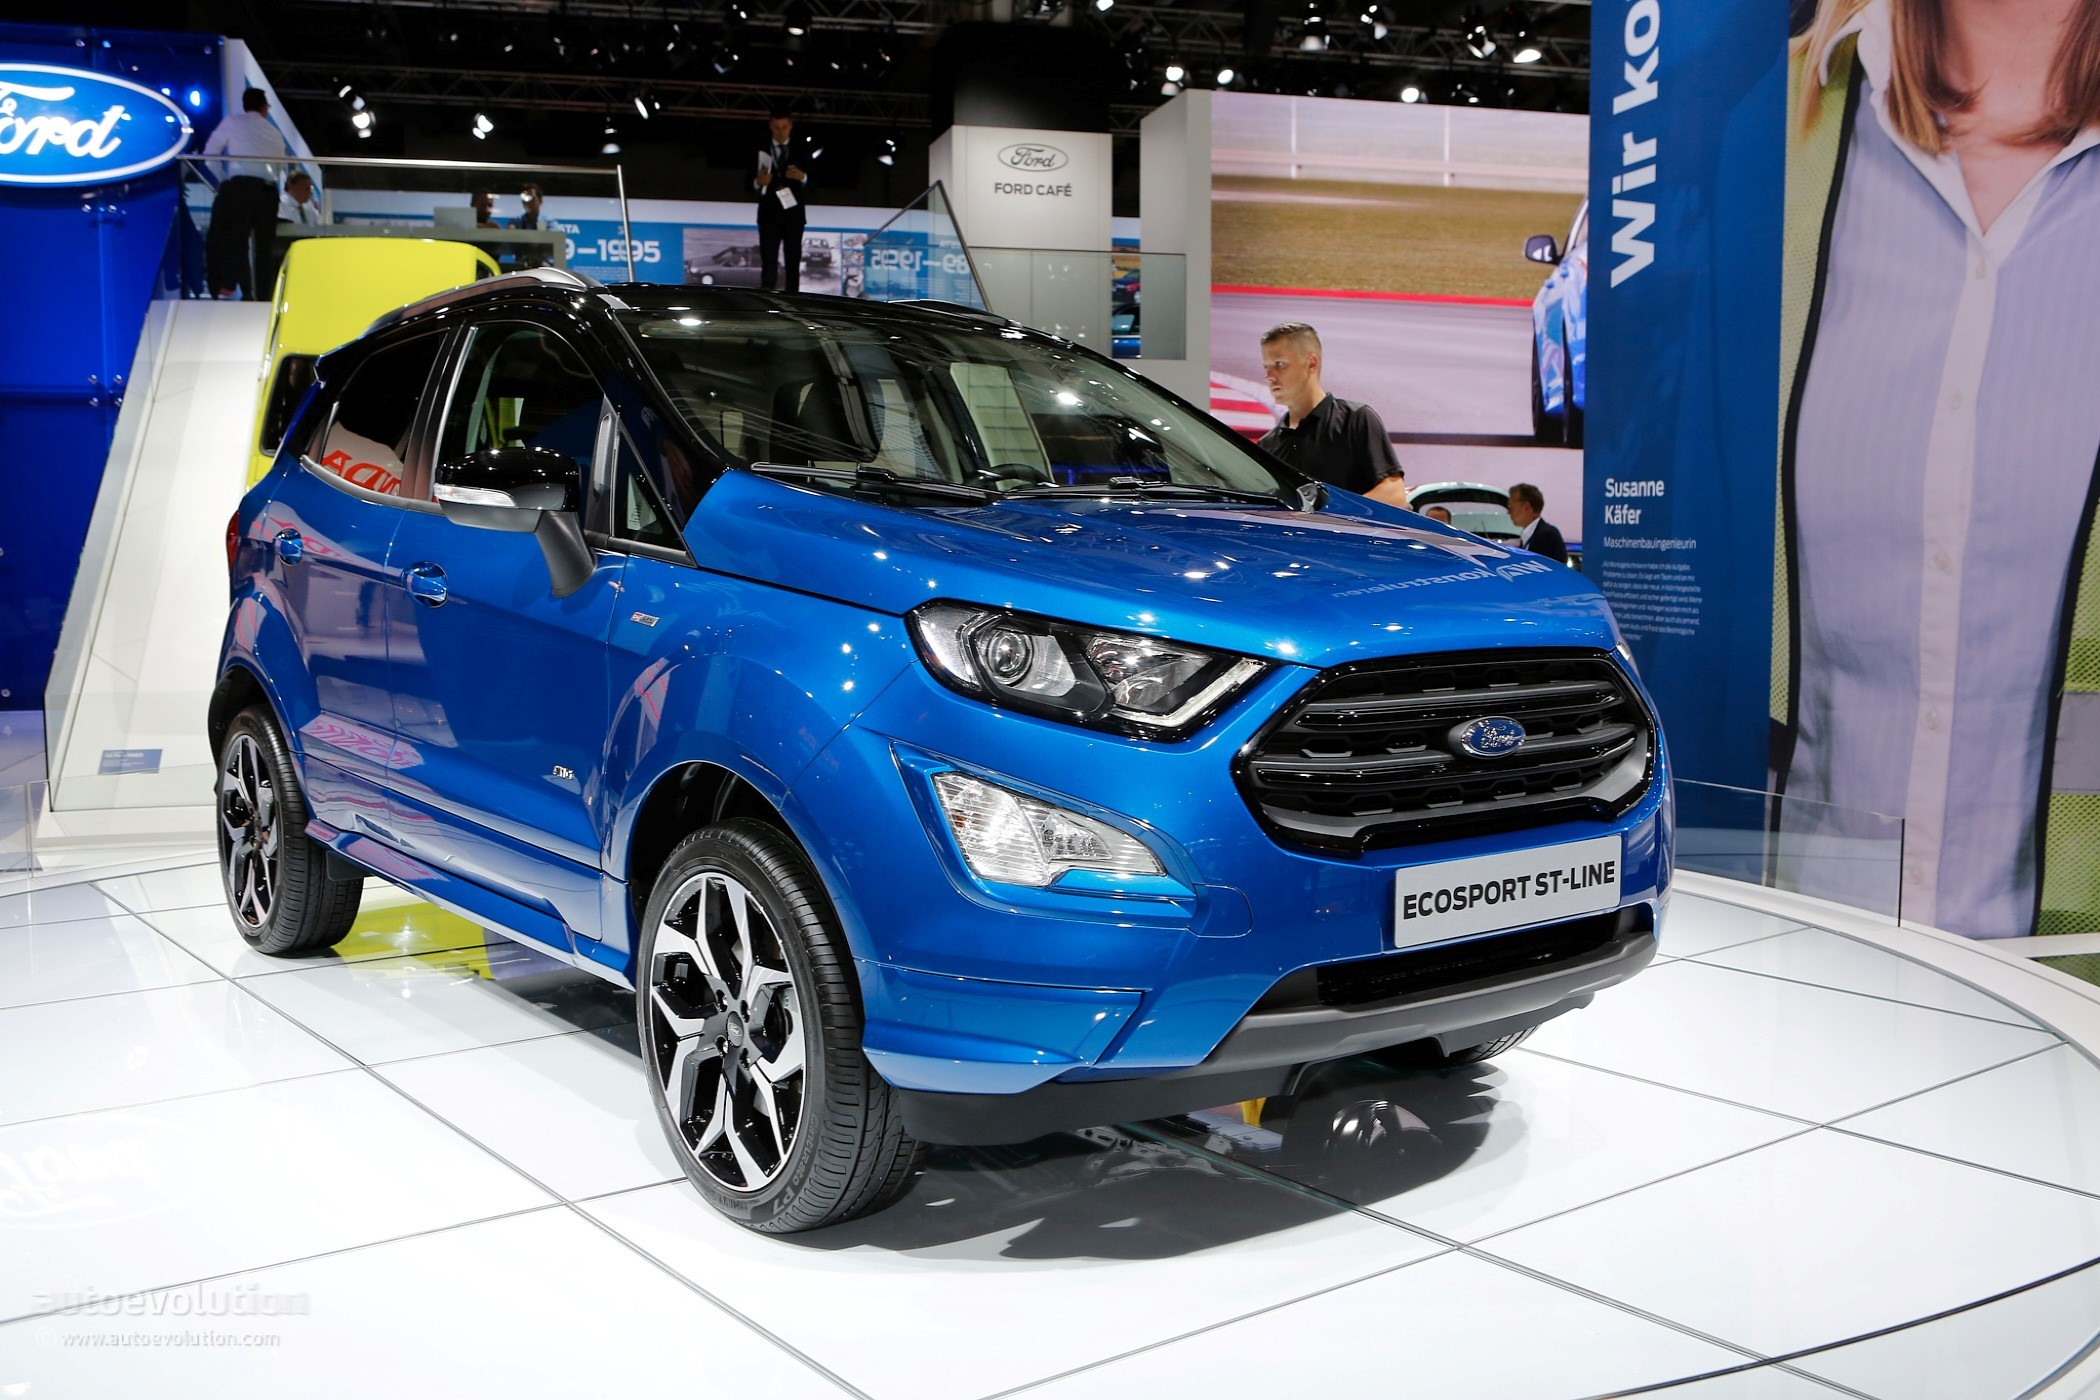 2018 Ford EcoSport Tries To Look Cool With ST-Line Package In Frankfurt - autoevolution